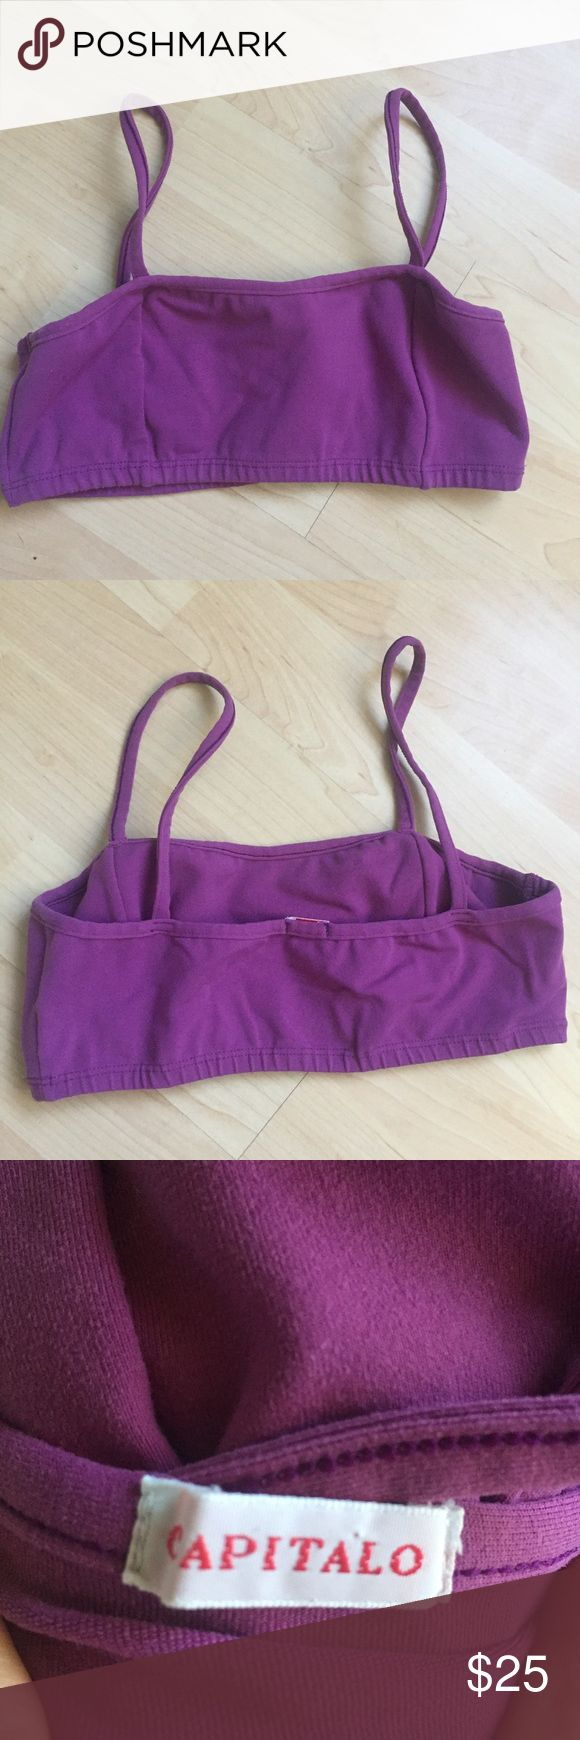 Purple sports bra Brand is Capitalo, purchased from a high end boutique on Maui. High quality material, thick and stretchy. Very flattering but doesn't fit my chest anymore! Worn lightly a few times. Great condition. I don't know the size but I would guess could fit a 32/34 B/C quite well. capitalo Intimates & Sleepwear Bras